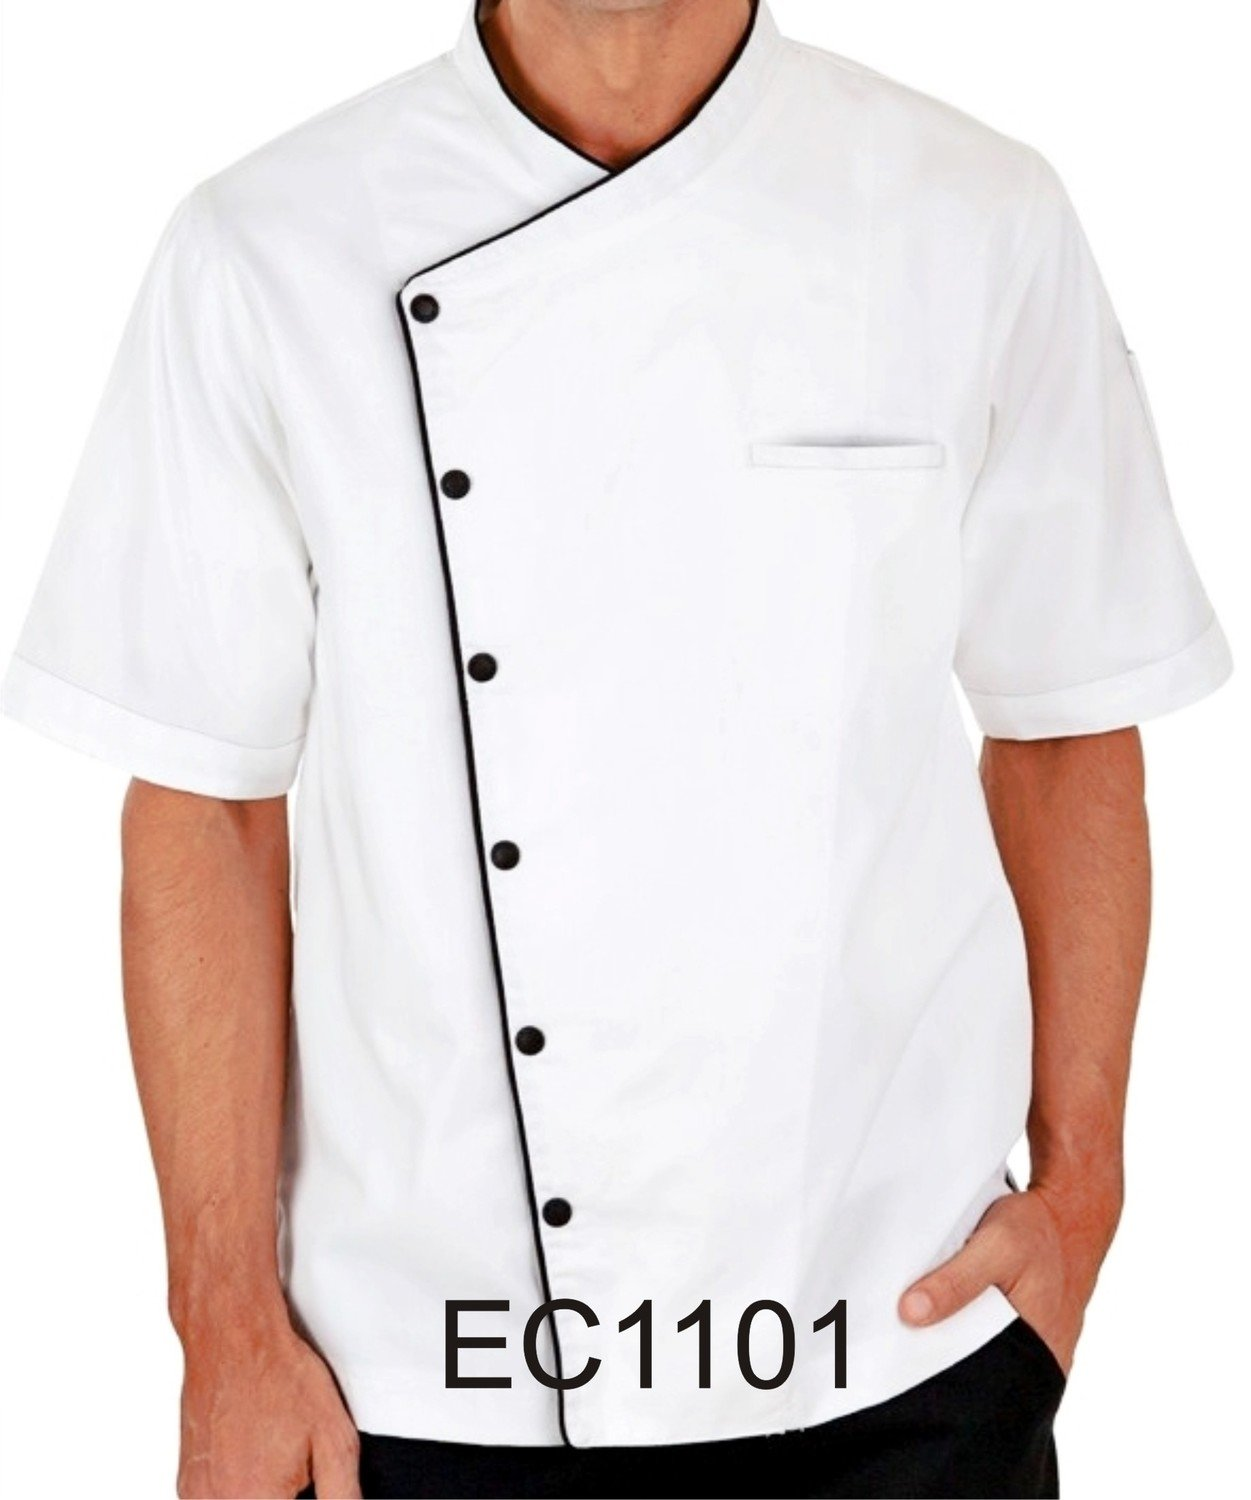 EC1101 EXECUTIVE CHEF COAT